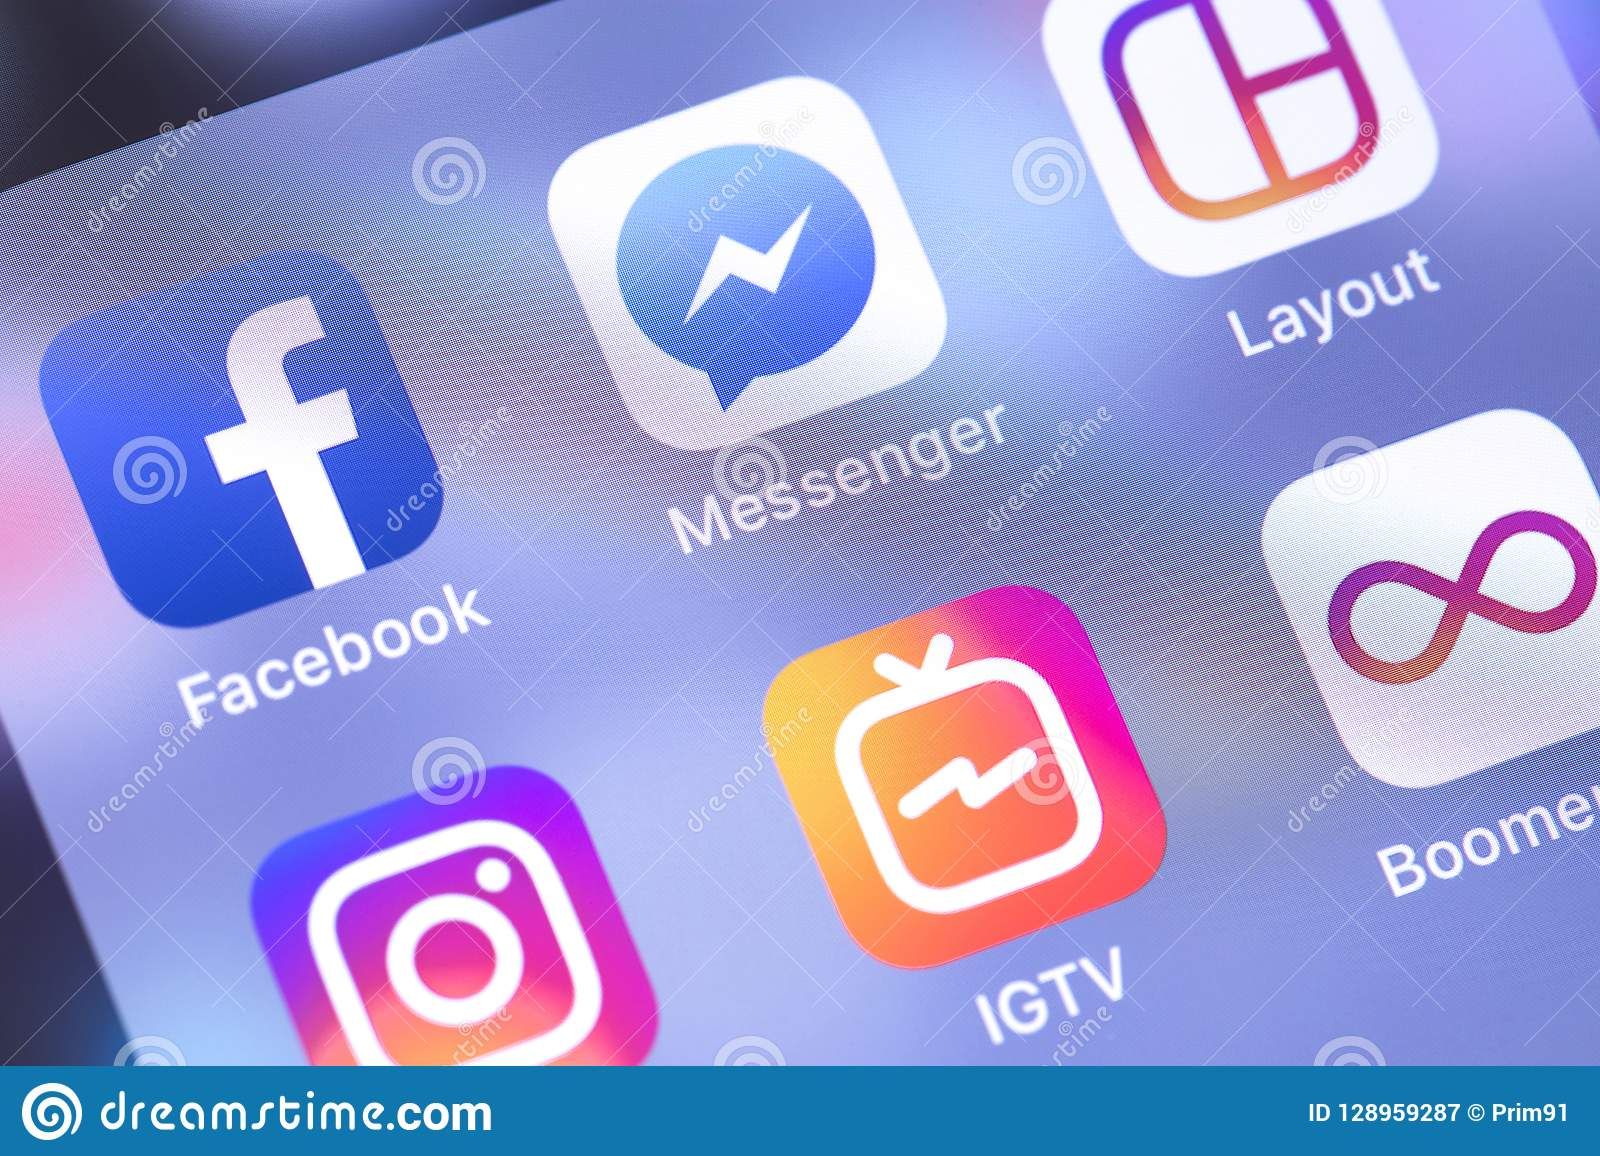 Facebook, Messenger, Instagram Apps Icons On The Screen